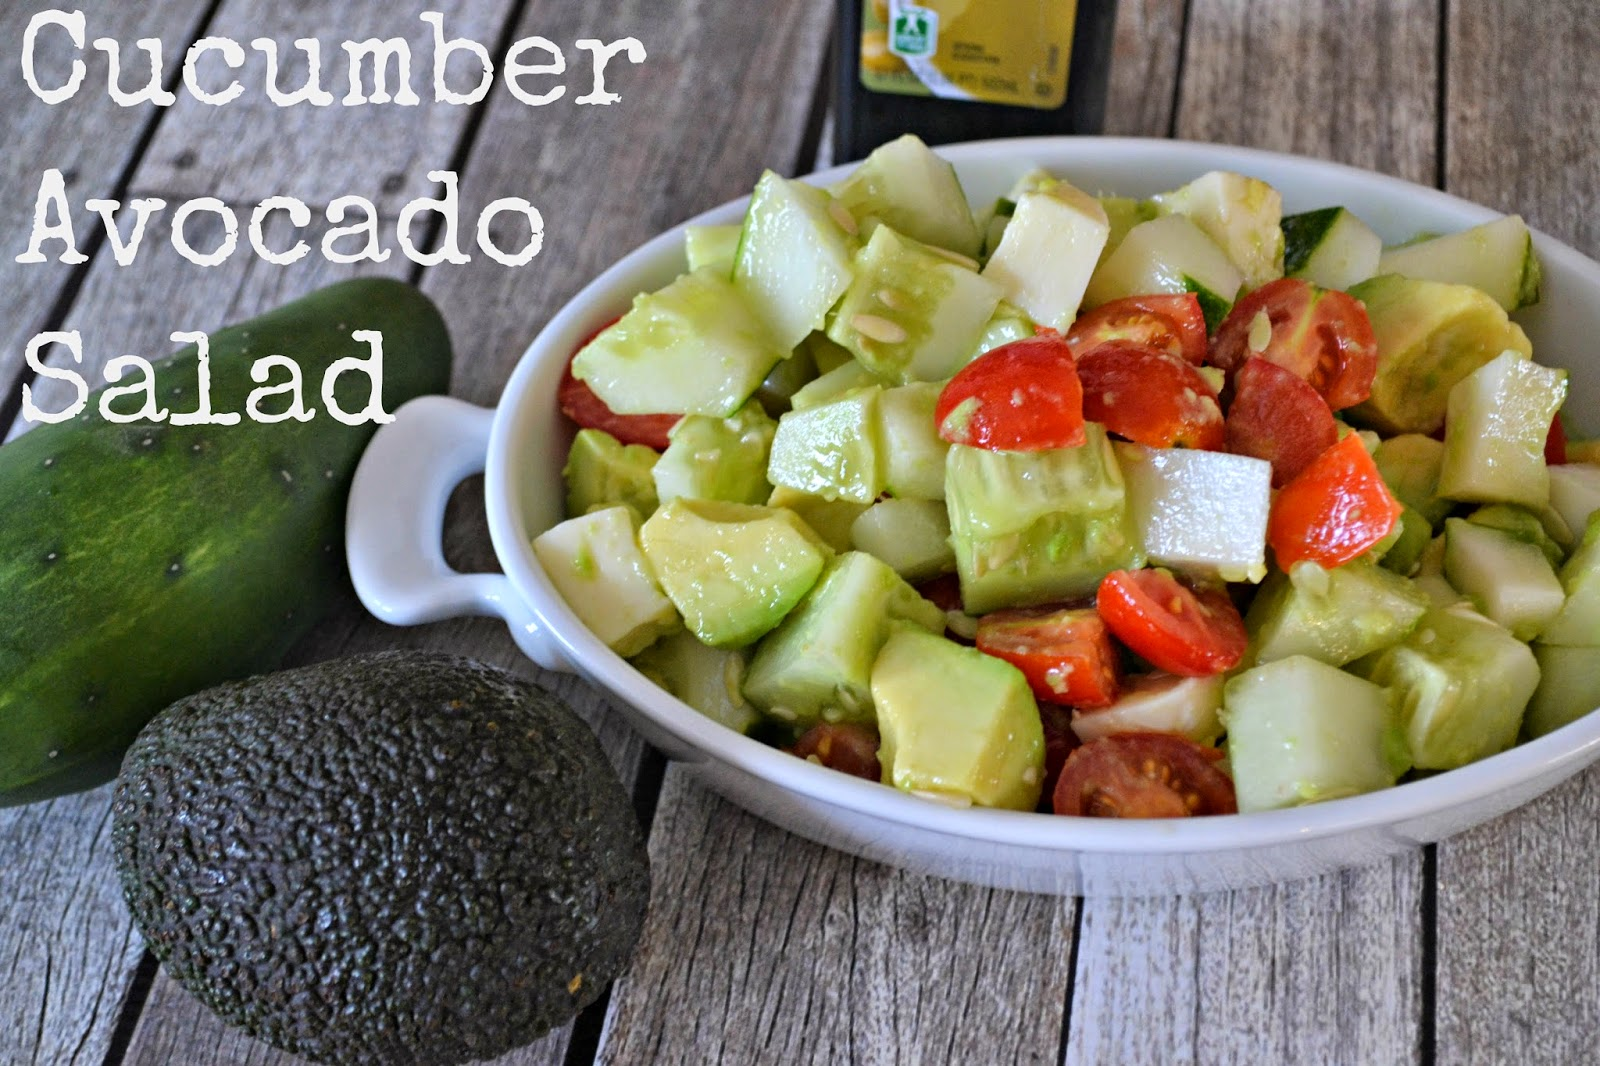 Cucumber Avocado Salad recipes.  Salad Recipes with Cucumbers.  salad recipes with Avocados.  Easy summer salad recipes.  Wild Oats Marketplace Organic products.